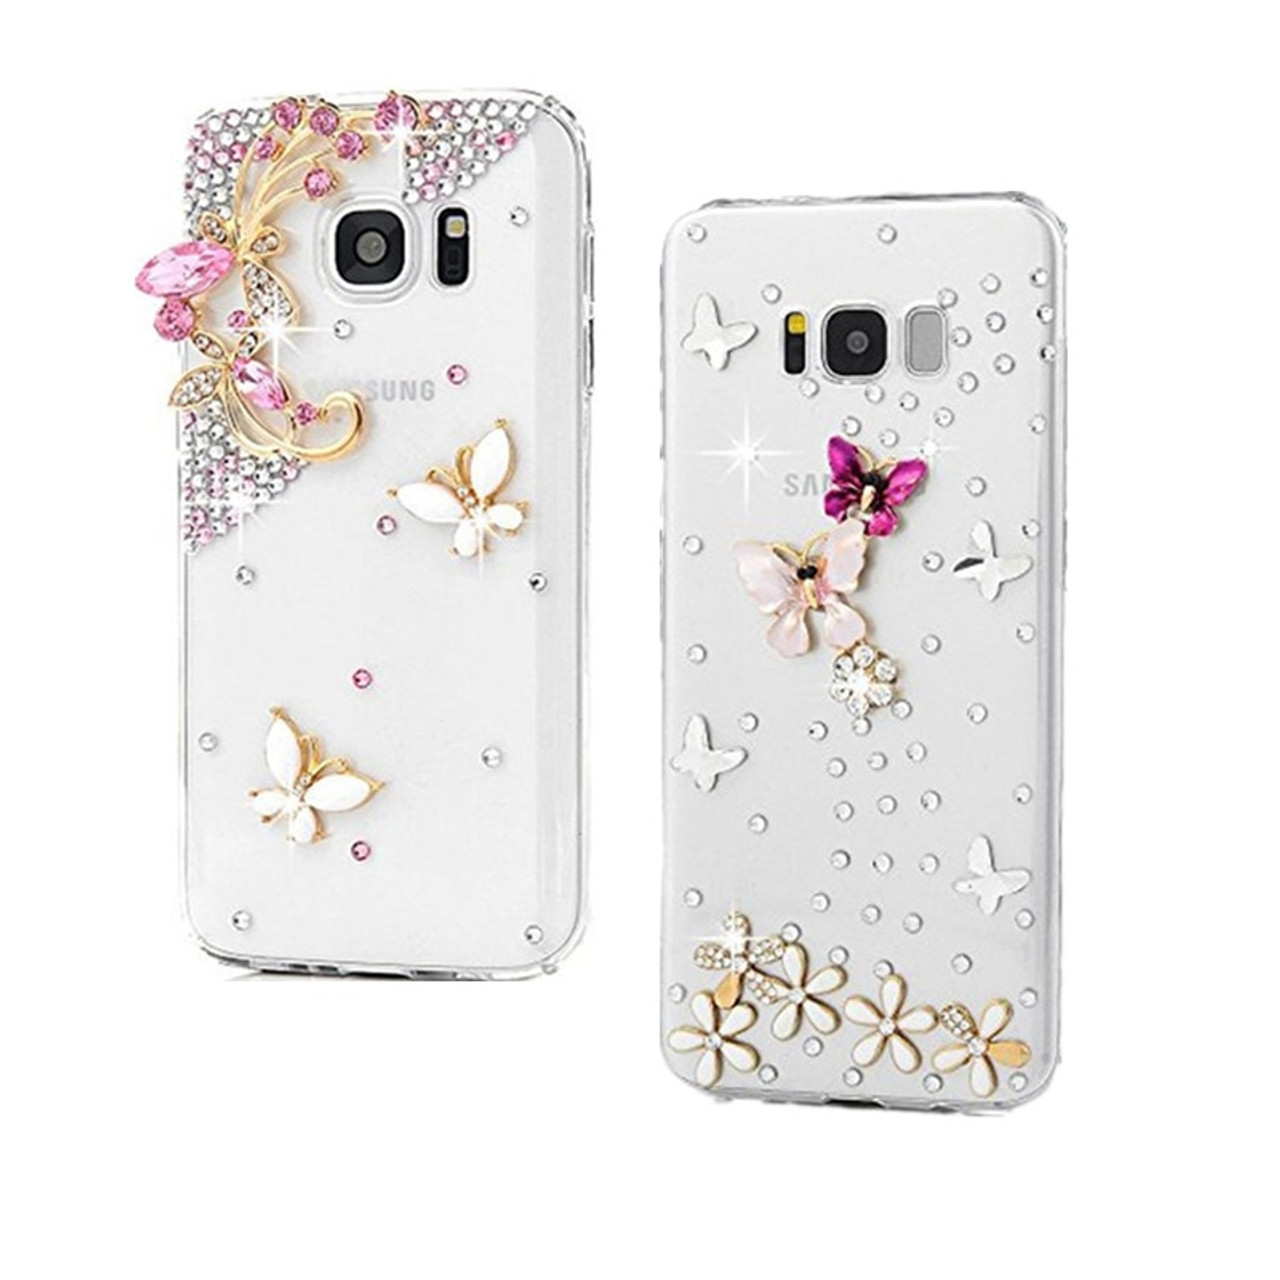 fda3186fd4b S8 Plus Diamond Bling Rhinestone Case for Samsung Galaxy J7 Neo J3 J5 A3 A5  A7 ...